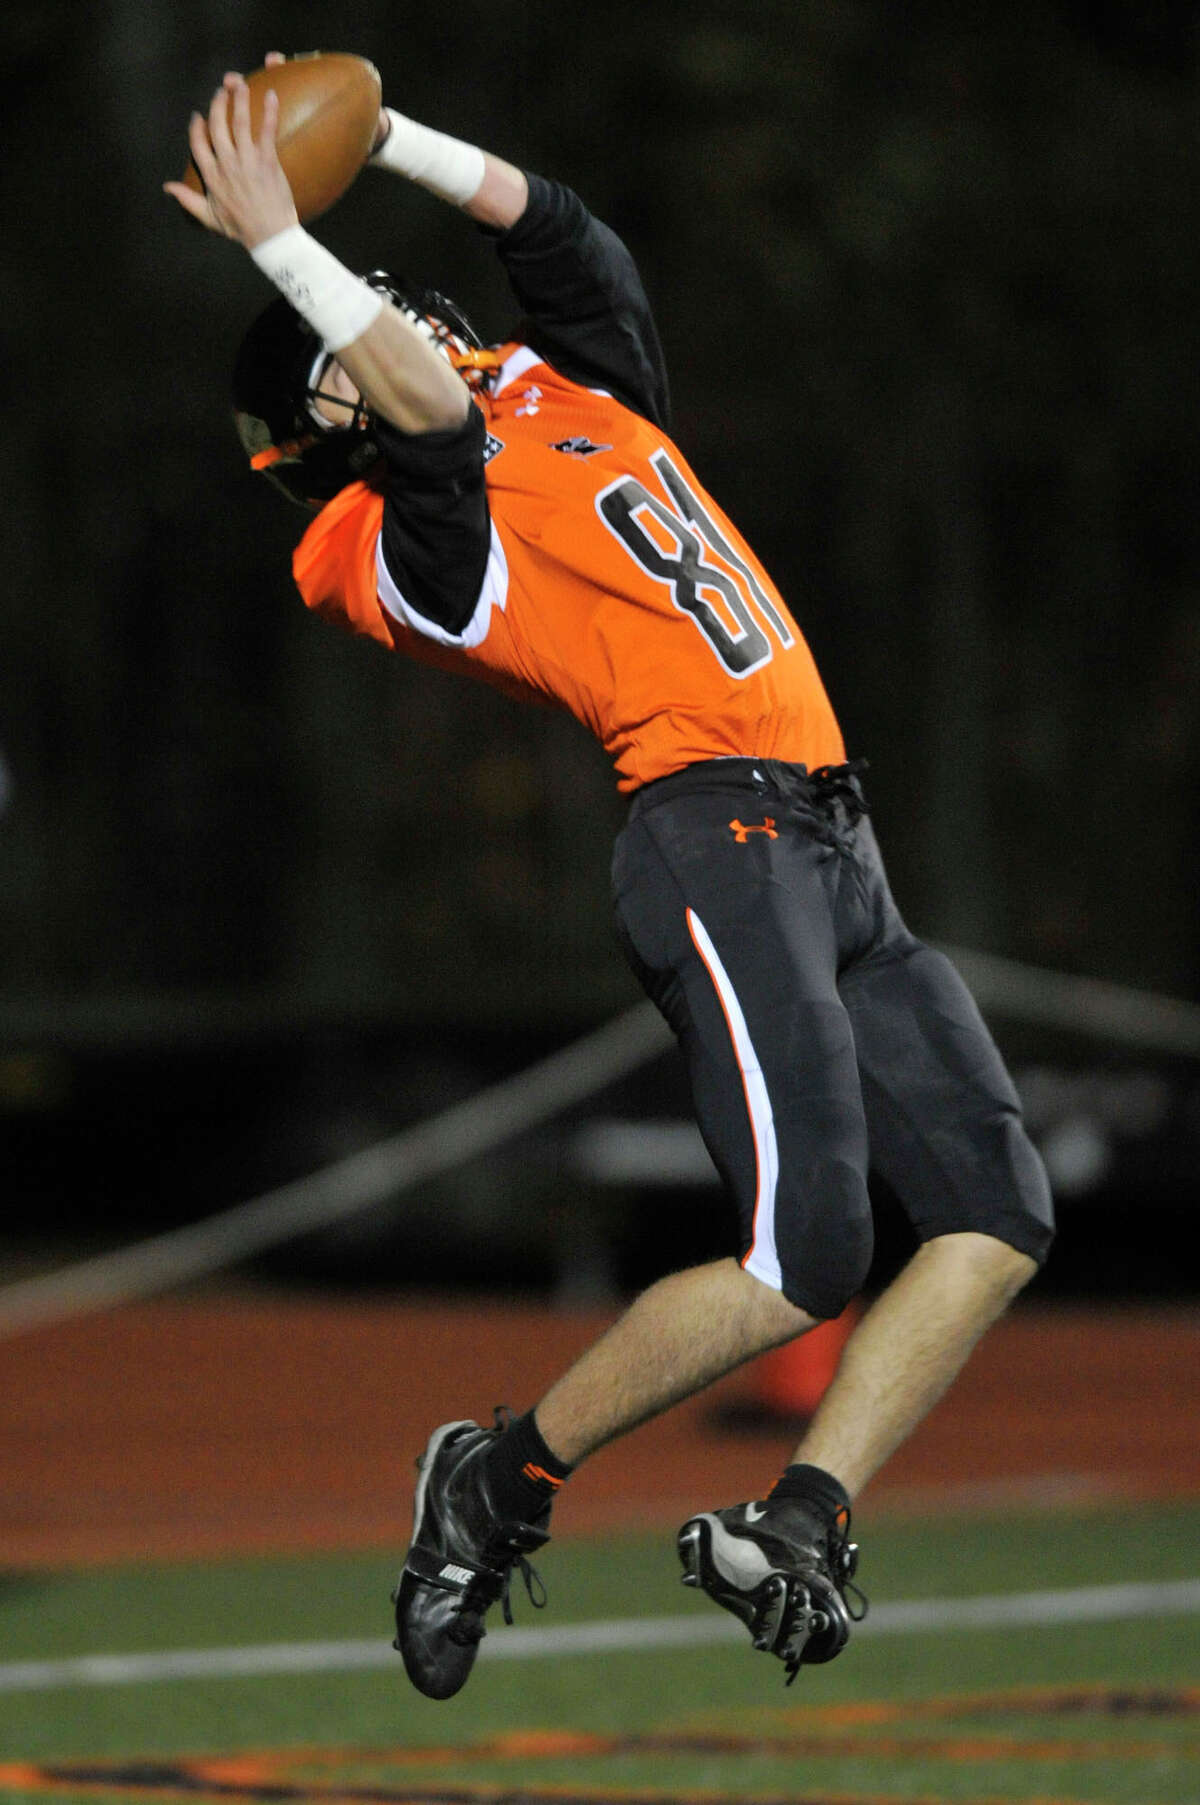 Stamford's Billy Devito makes a leaping touchdown catch with seconds left in the half during the Black Knights' football game against Westhill at Stamford High School in Stamford, Conn., on Tuesday, Nov. 25, 2014. Stamford won, 42-21.